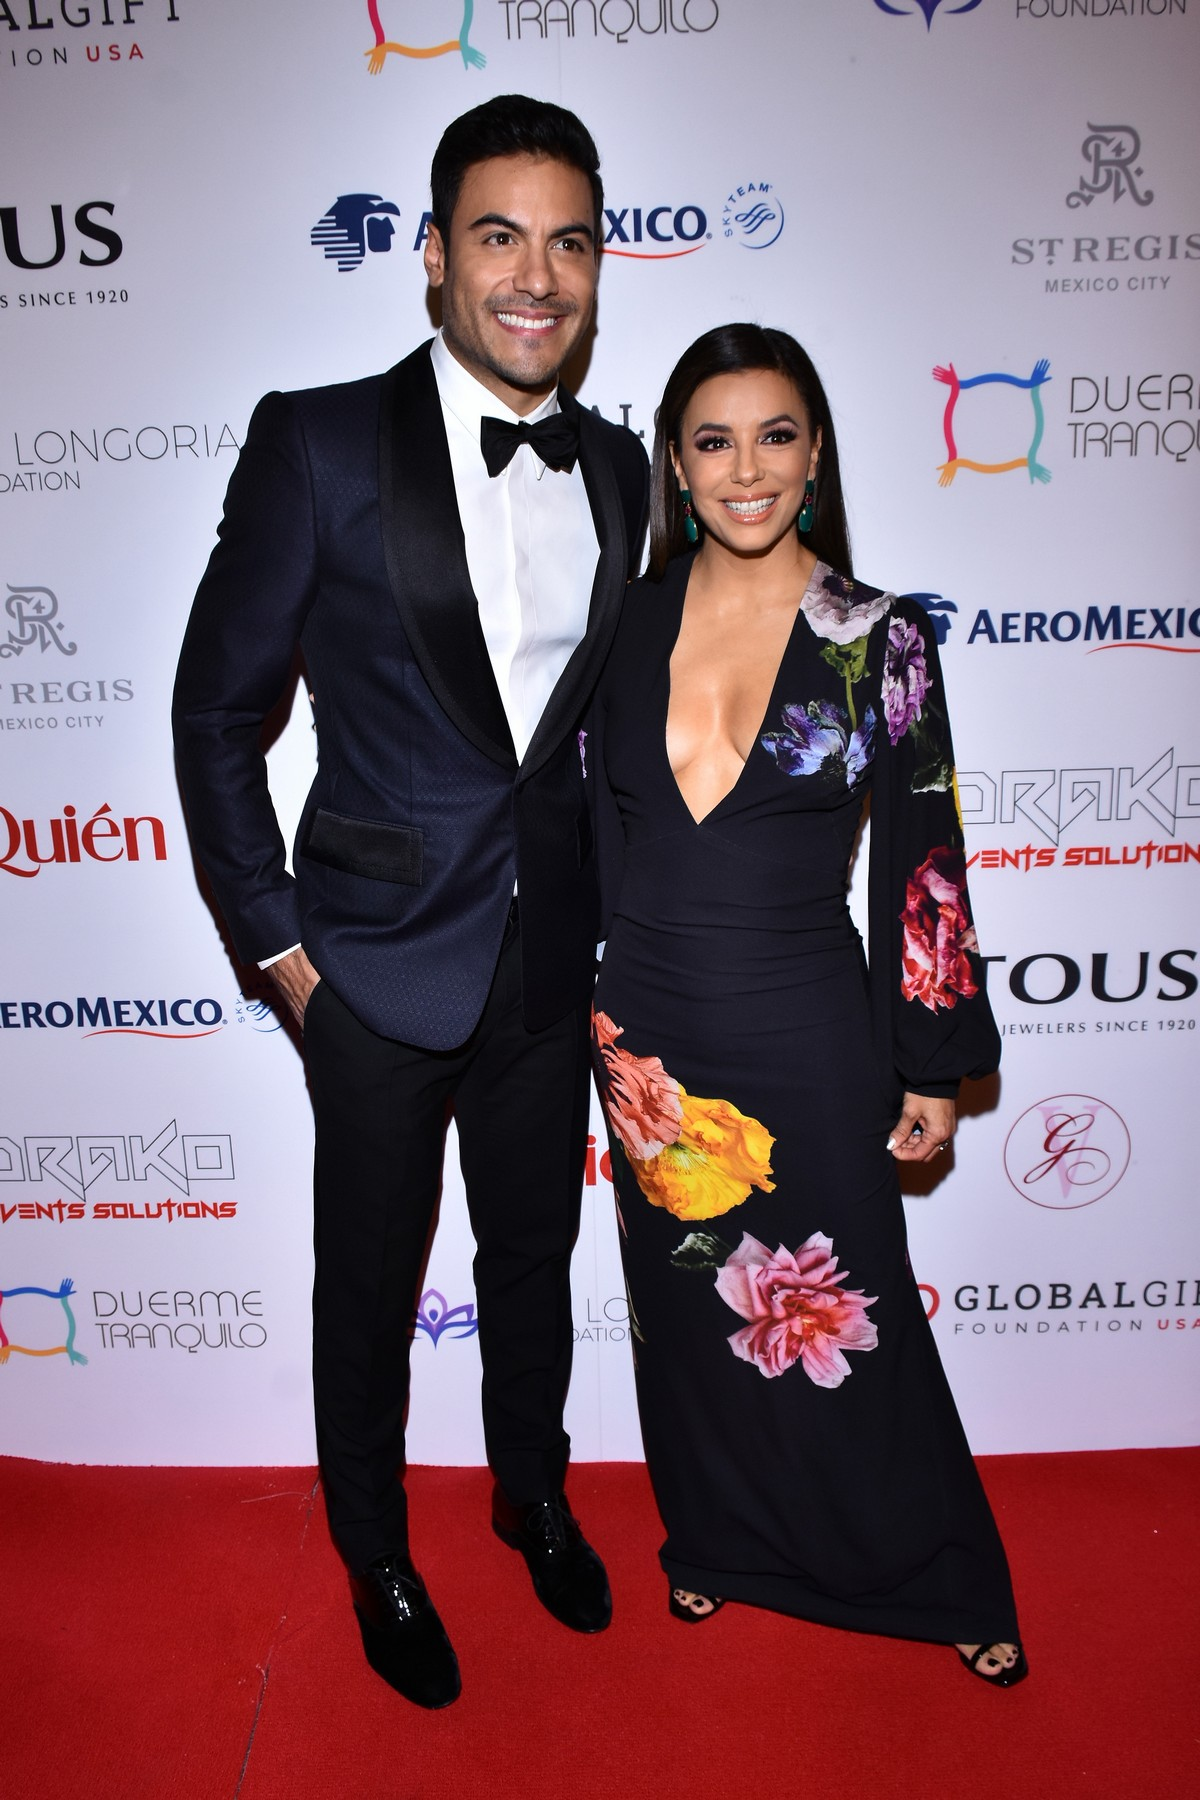 Eva Longoria and Carlos Rivera attends 5th Global Gift Foundation Gala in Mexico City 2019/11/19 2